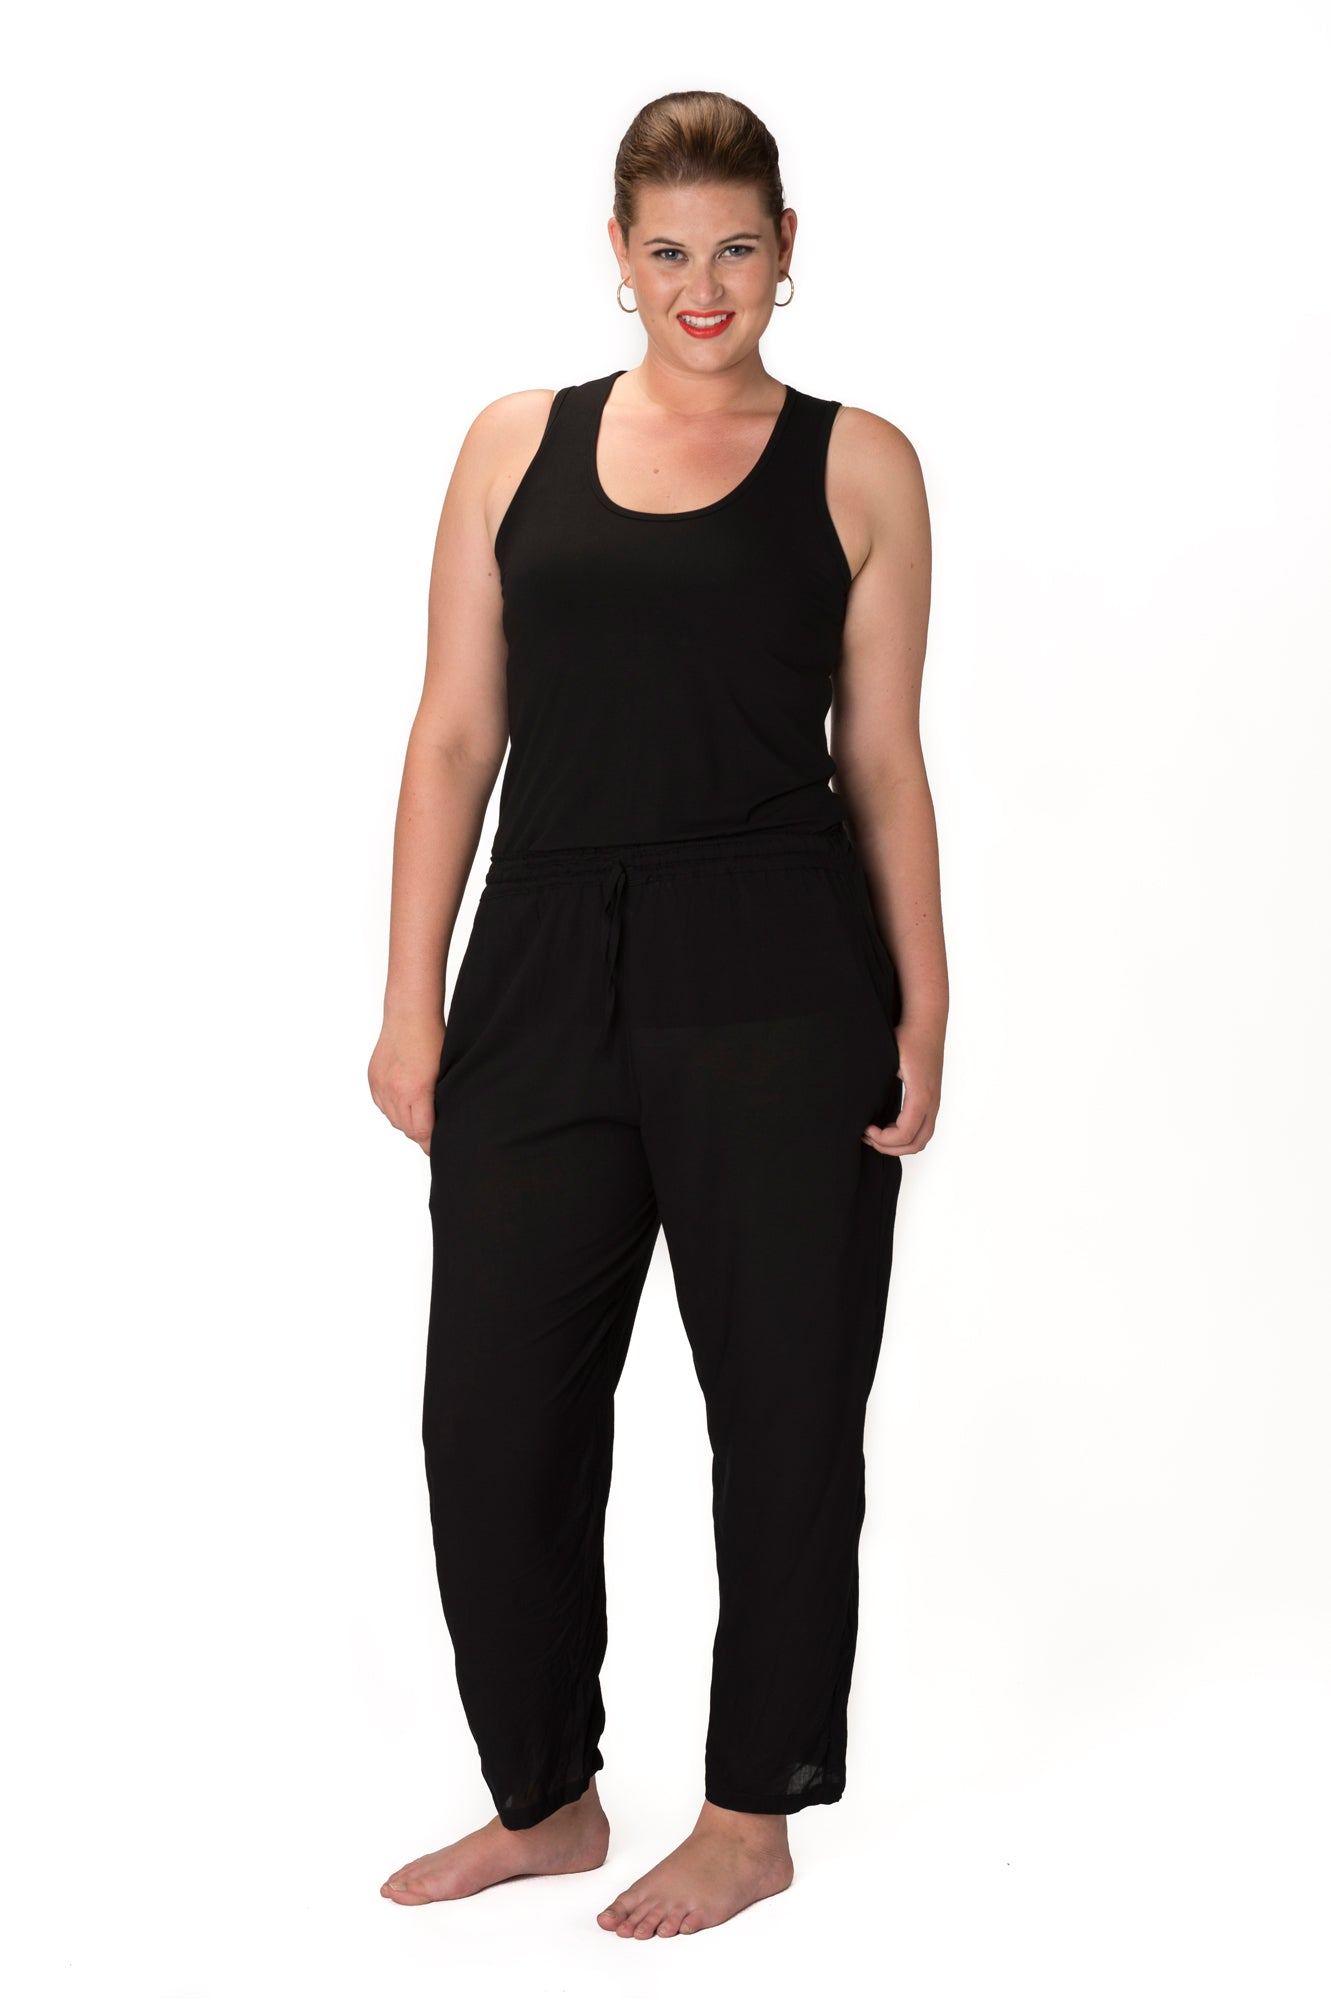 Crinkle rayon black tapered leg pant with elastic waist and coin tassel on the tie belt with side pockets